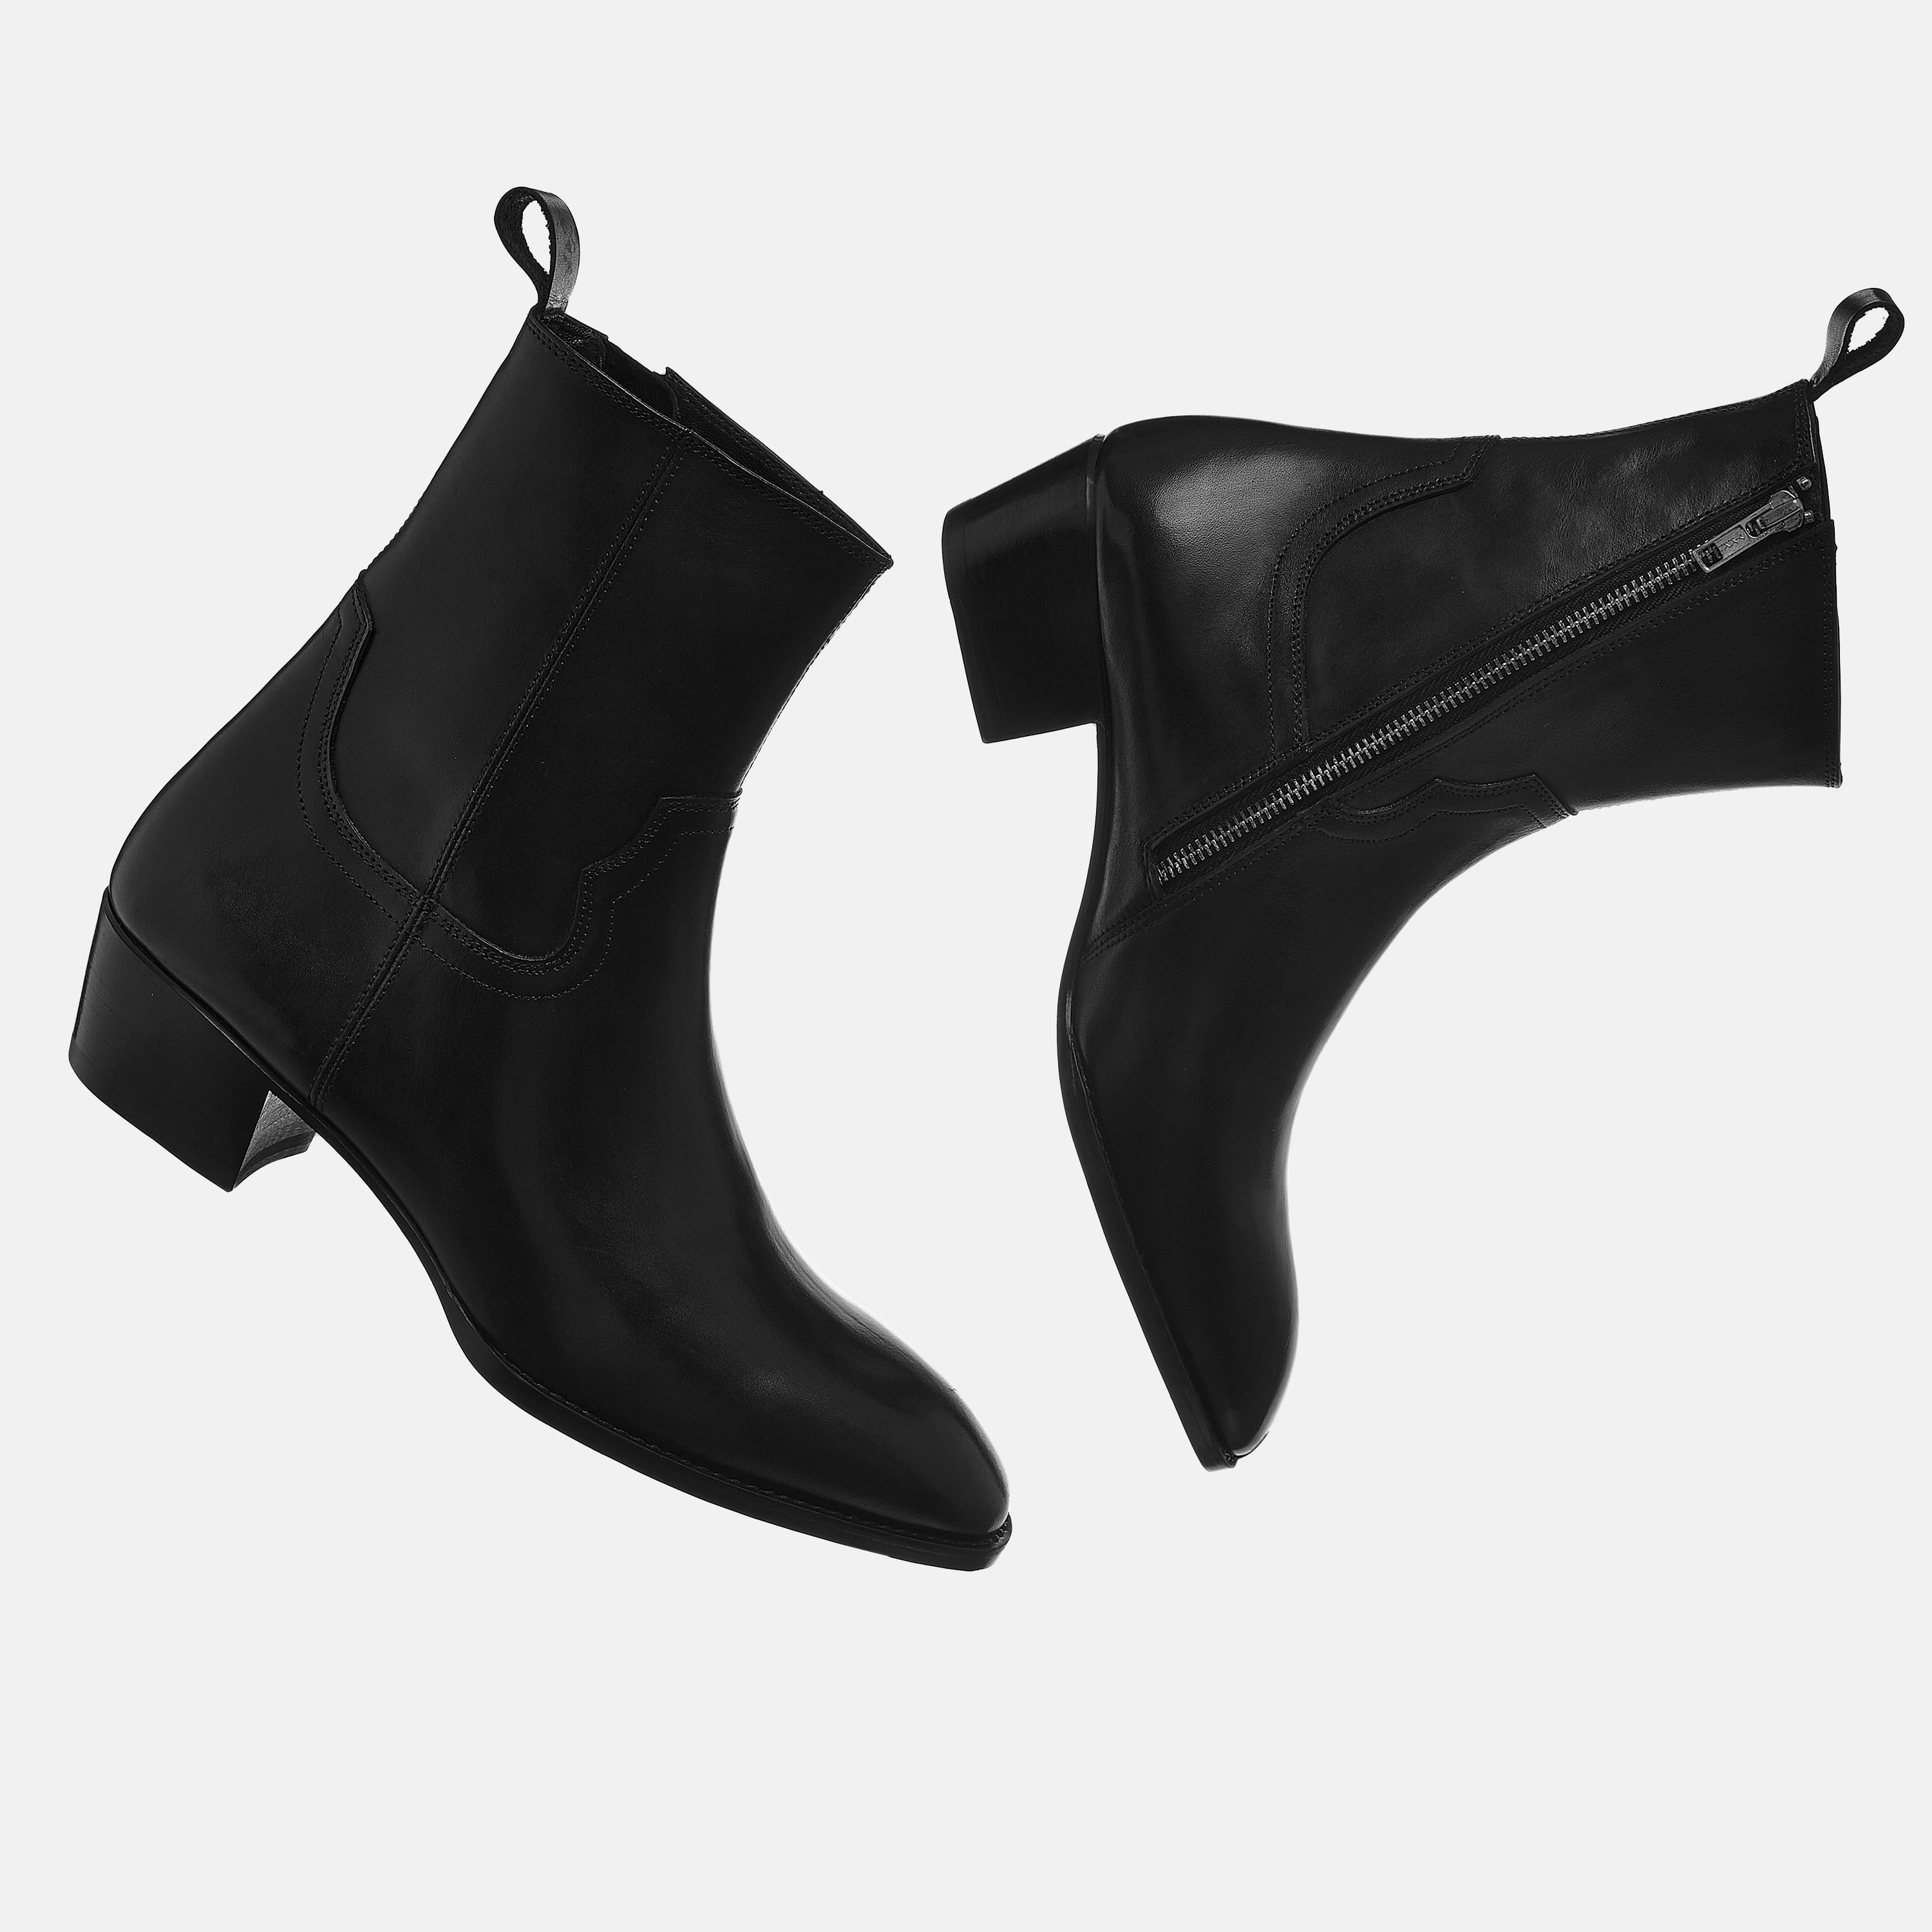 Leather Zip Boots In Black Leather Zip Boots In Black SS2020 3 1